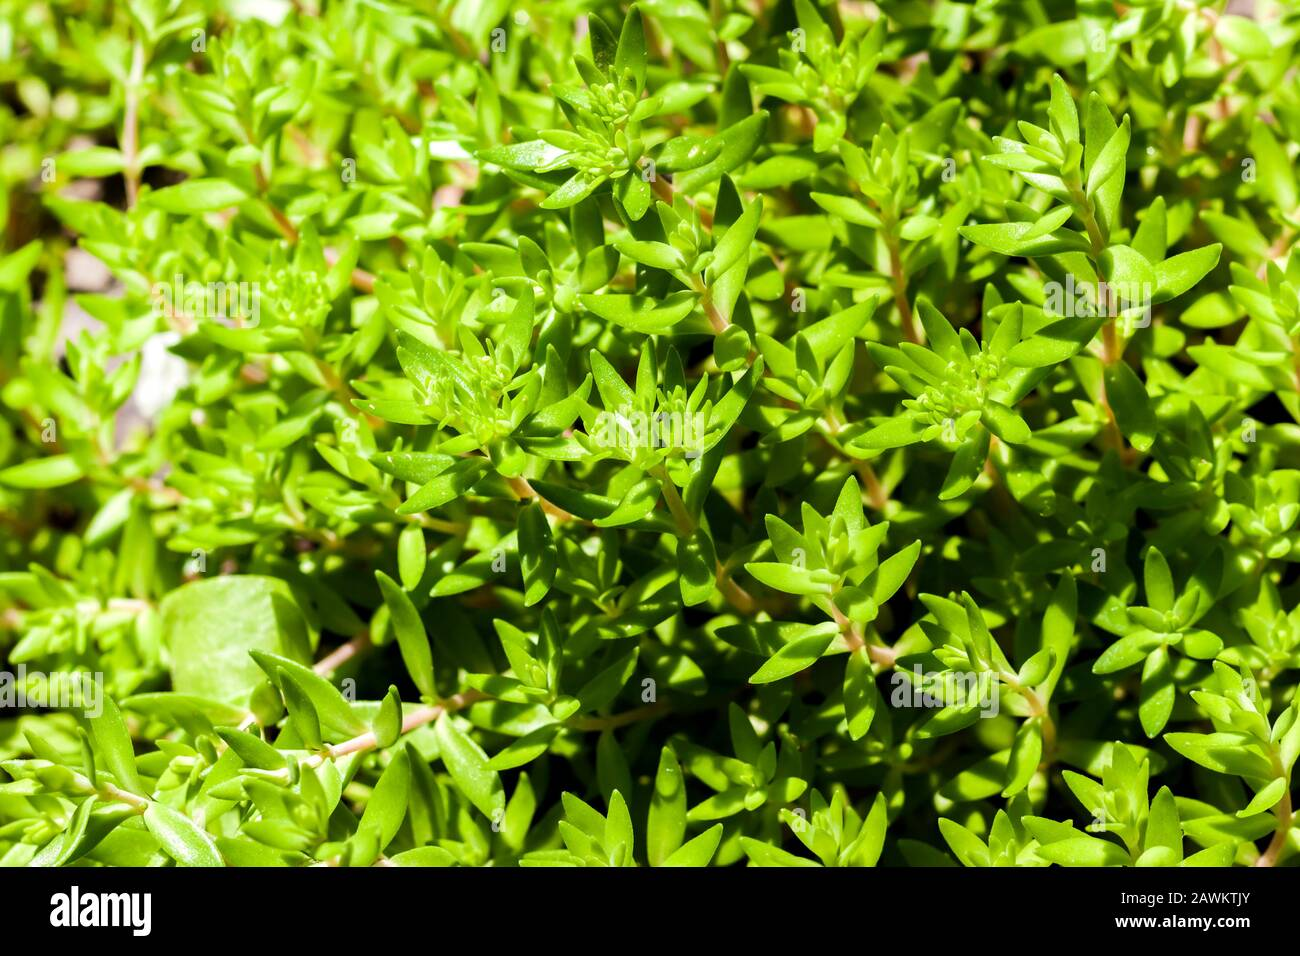 Sedum Acre 50 Seeds,goldmoss stonecrop mossy stonecrop beautiful from early spring to late autumn